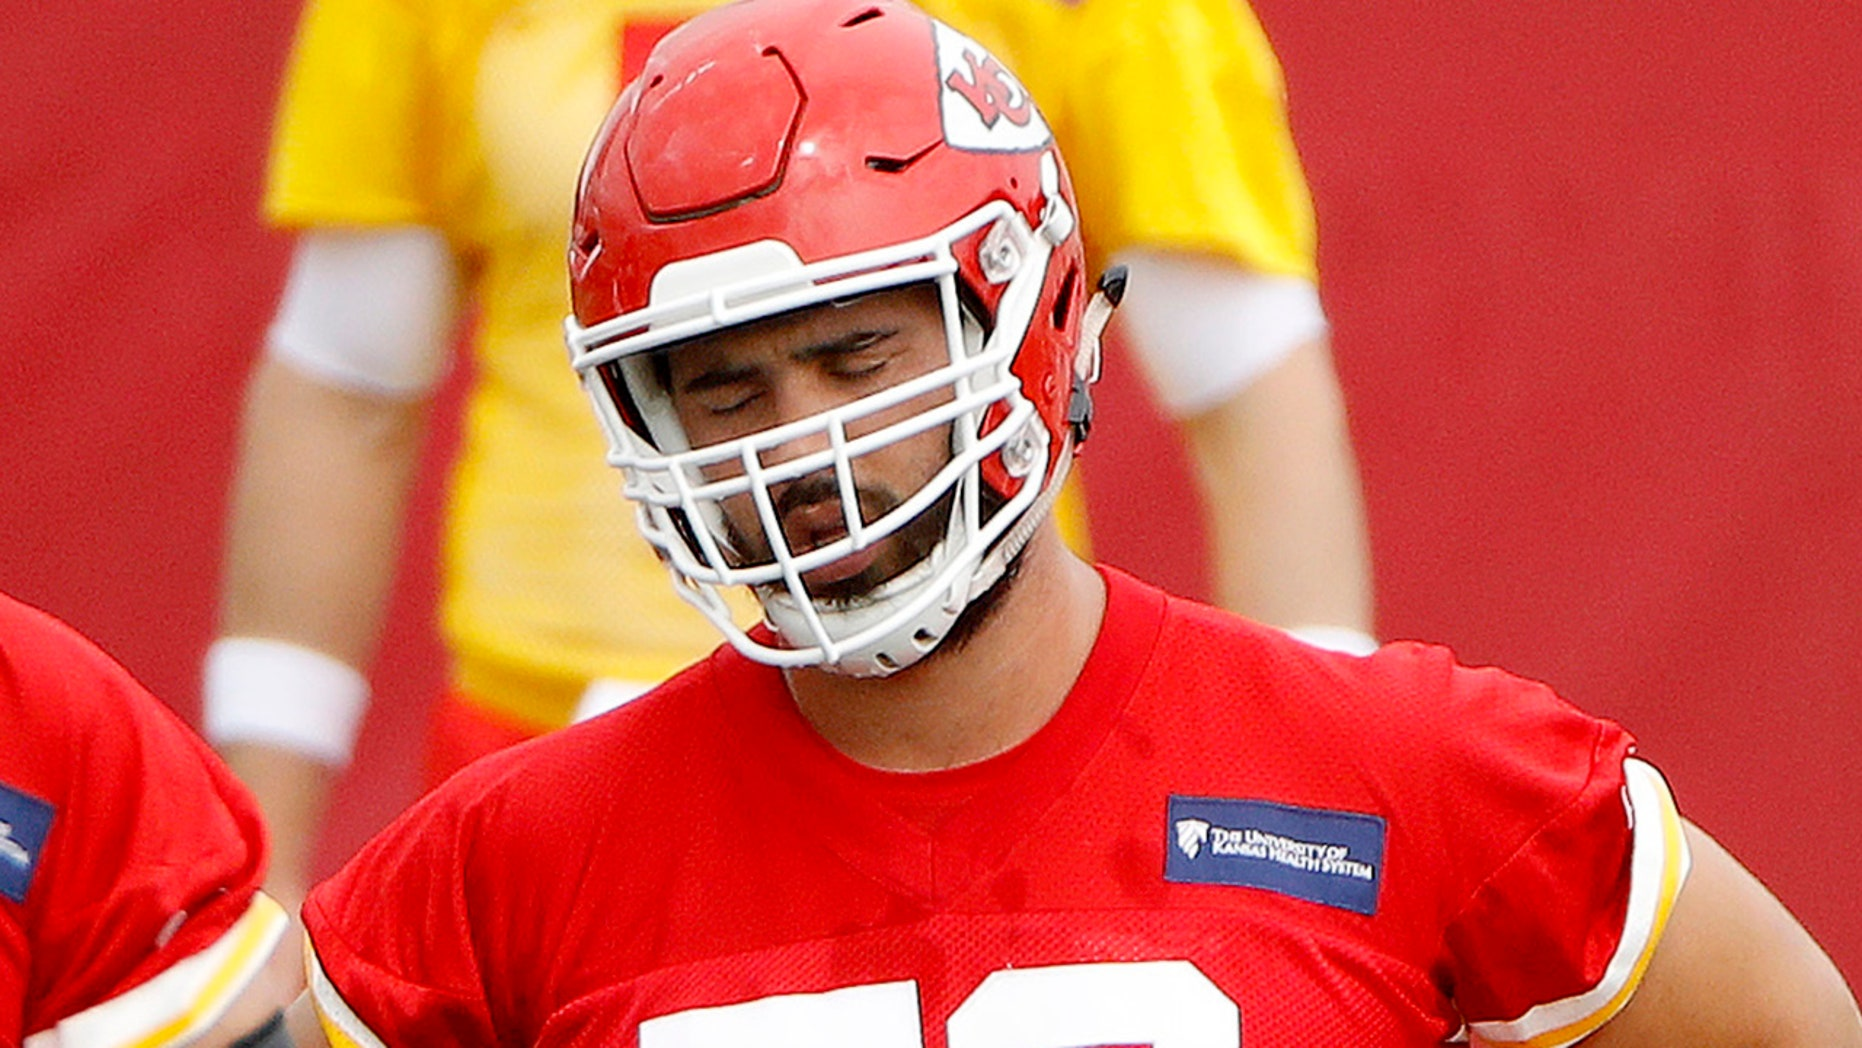 Laurent Duvernay-Tardif was reportedly denied a request to put 'M.D' on the back of his jersey.